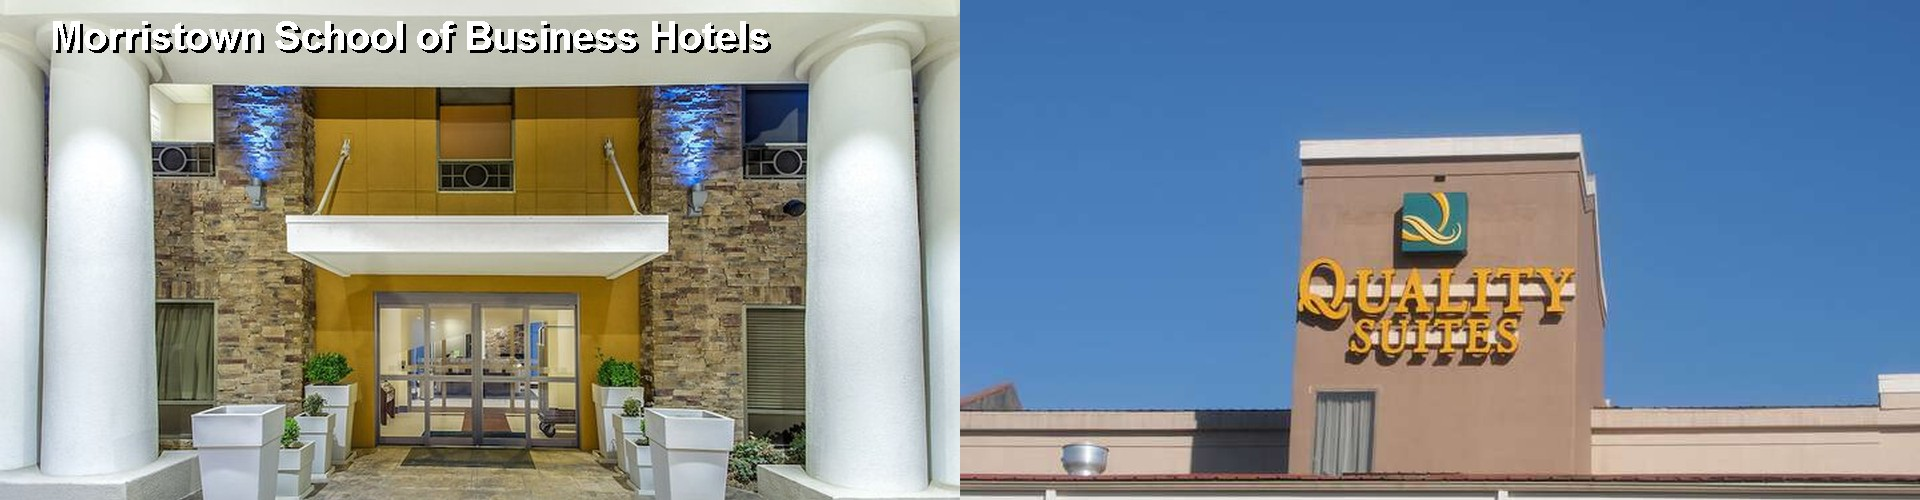 5 Best Hotels near Morristown School of Business